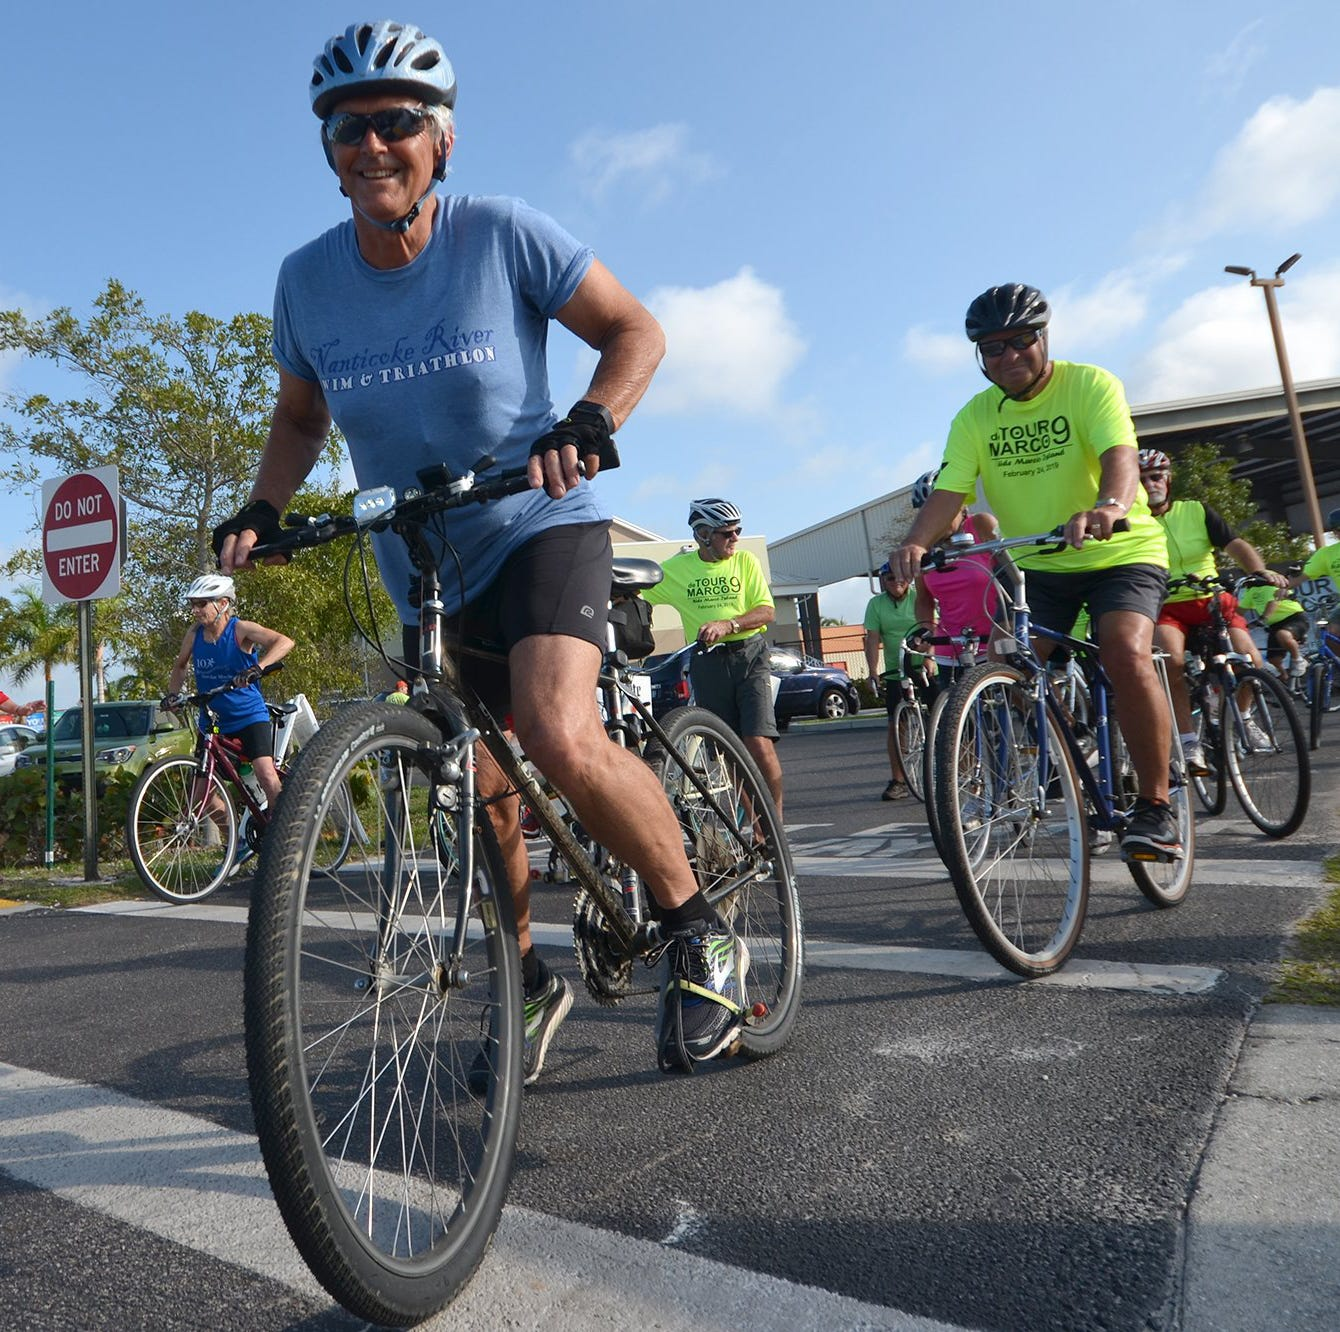 Tour de Marco: Cyclists cover island in Sunday morning ride